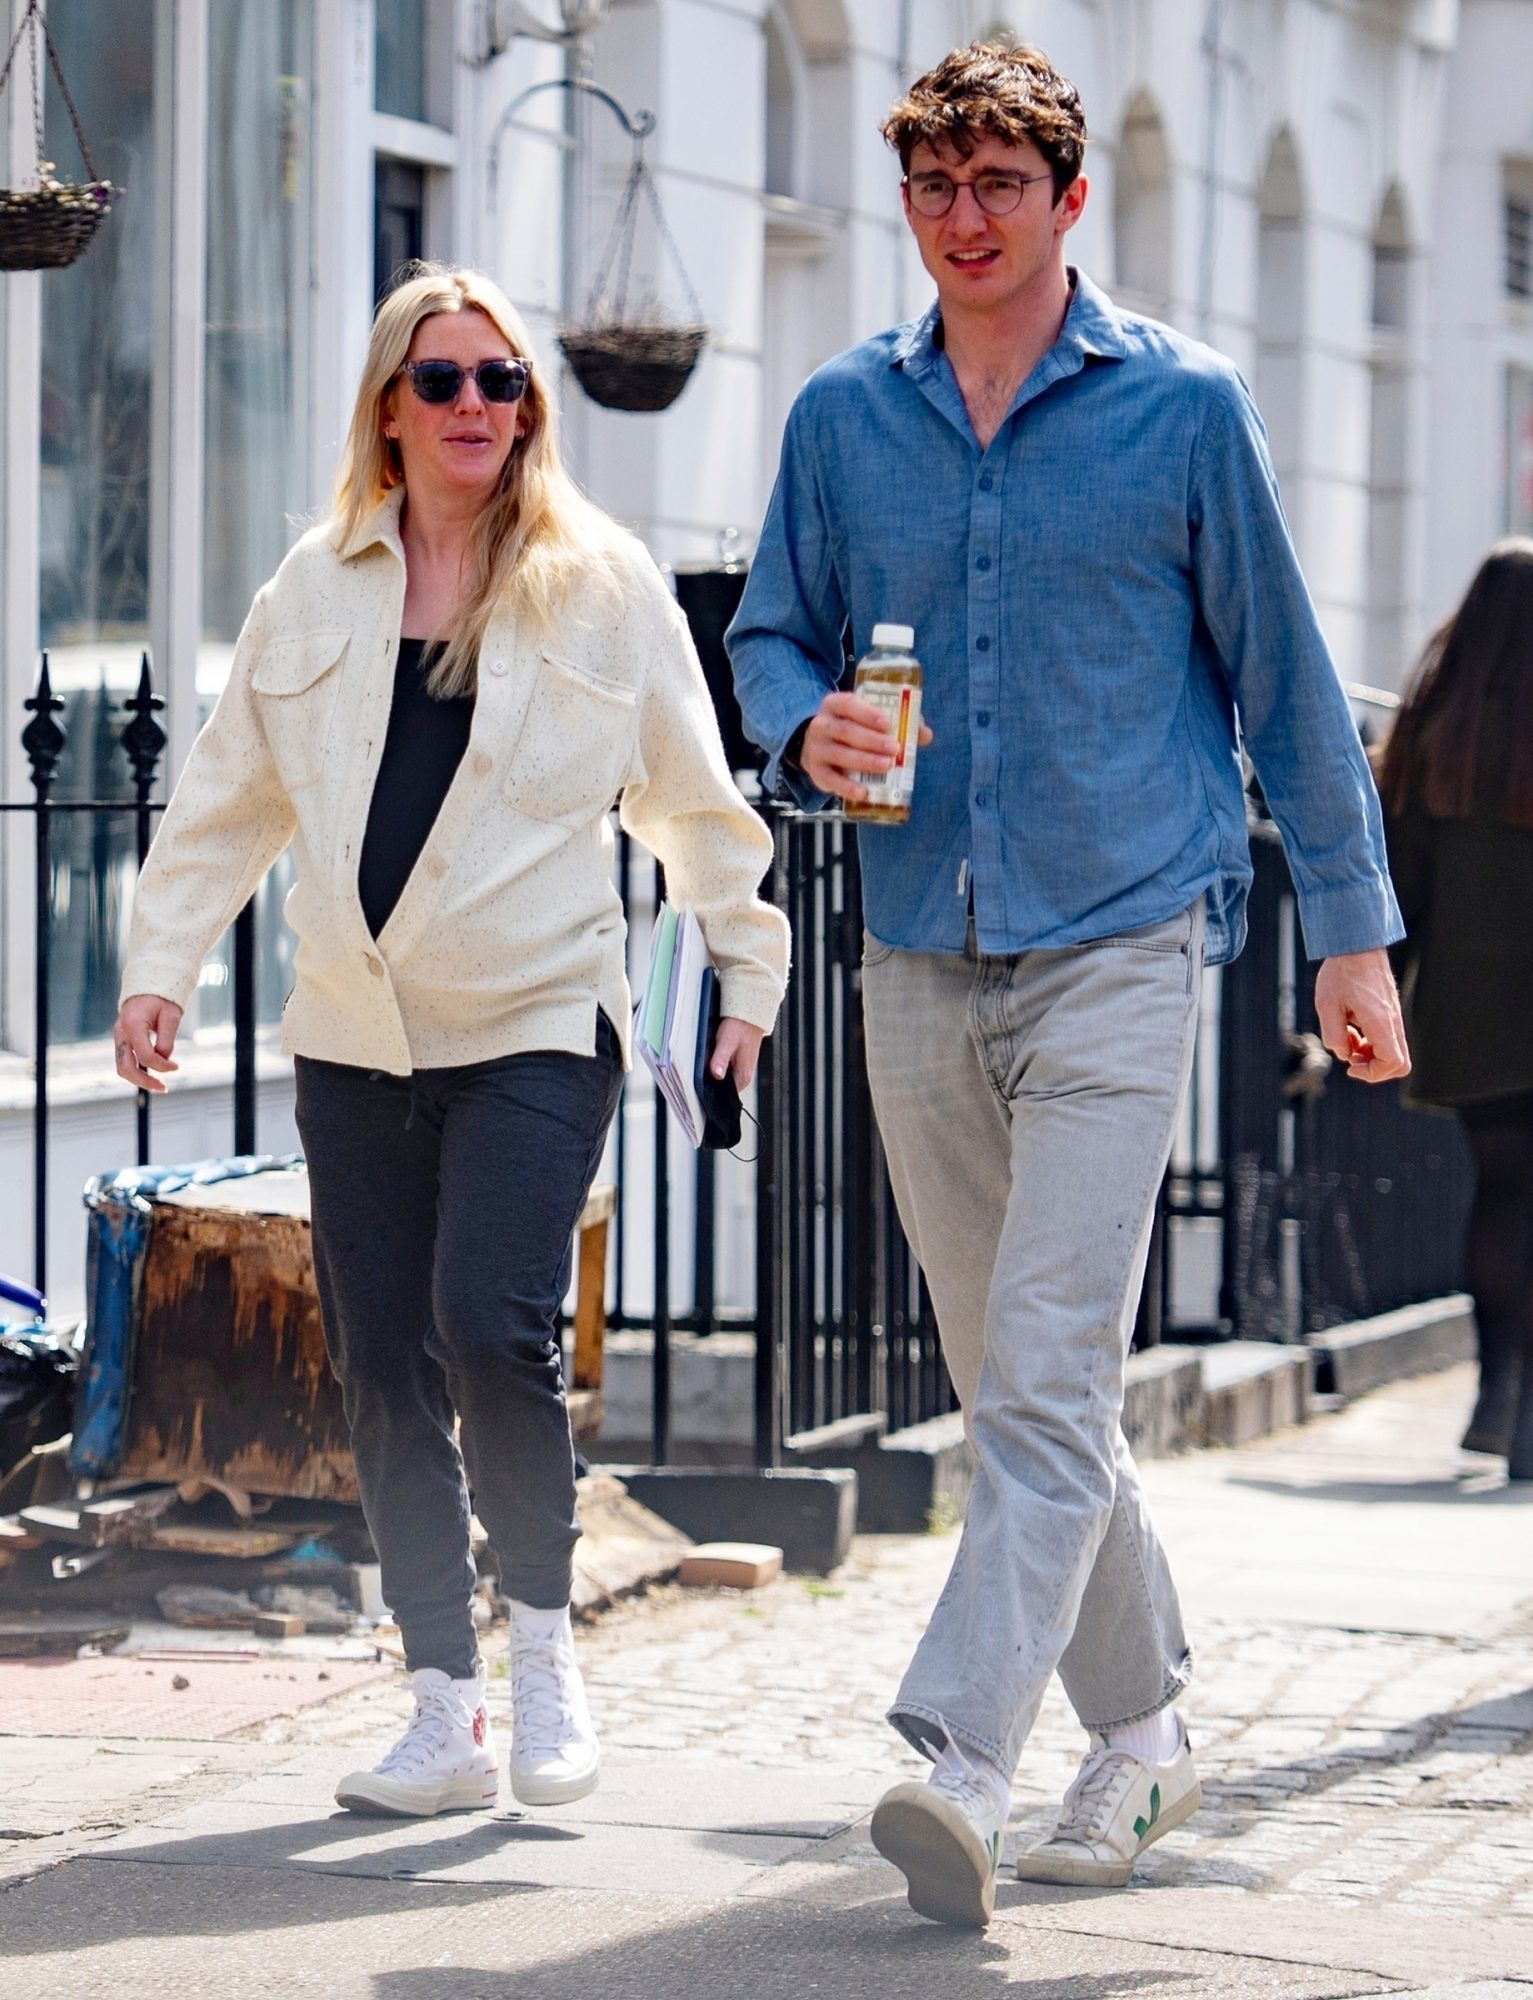 Ellie Goulding steps out with husband Caspar Jopling